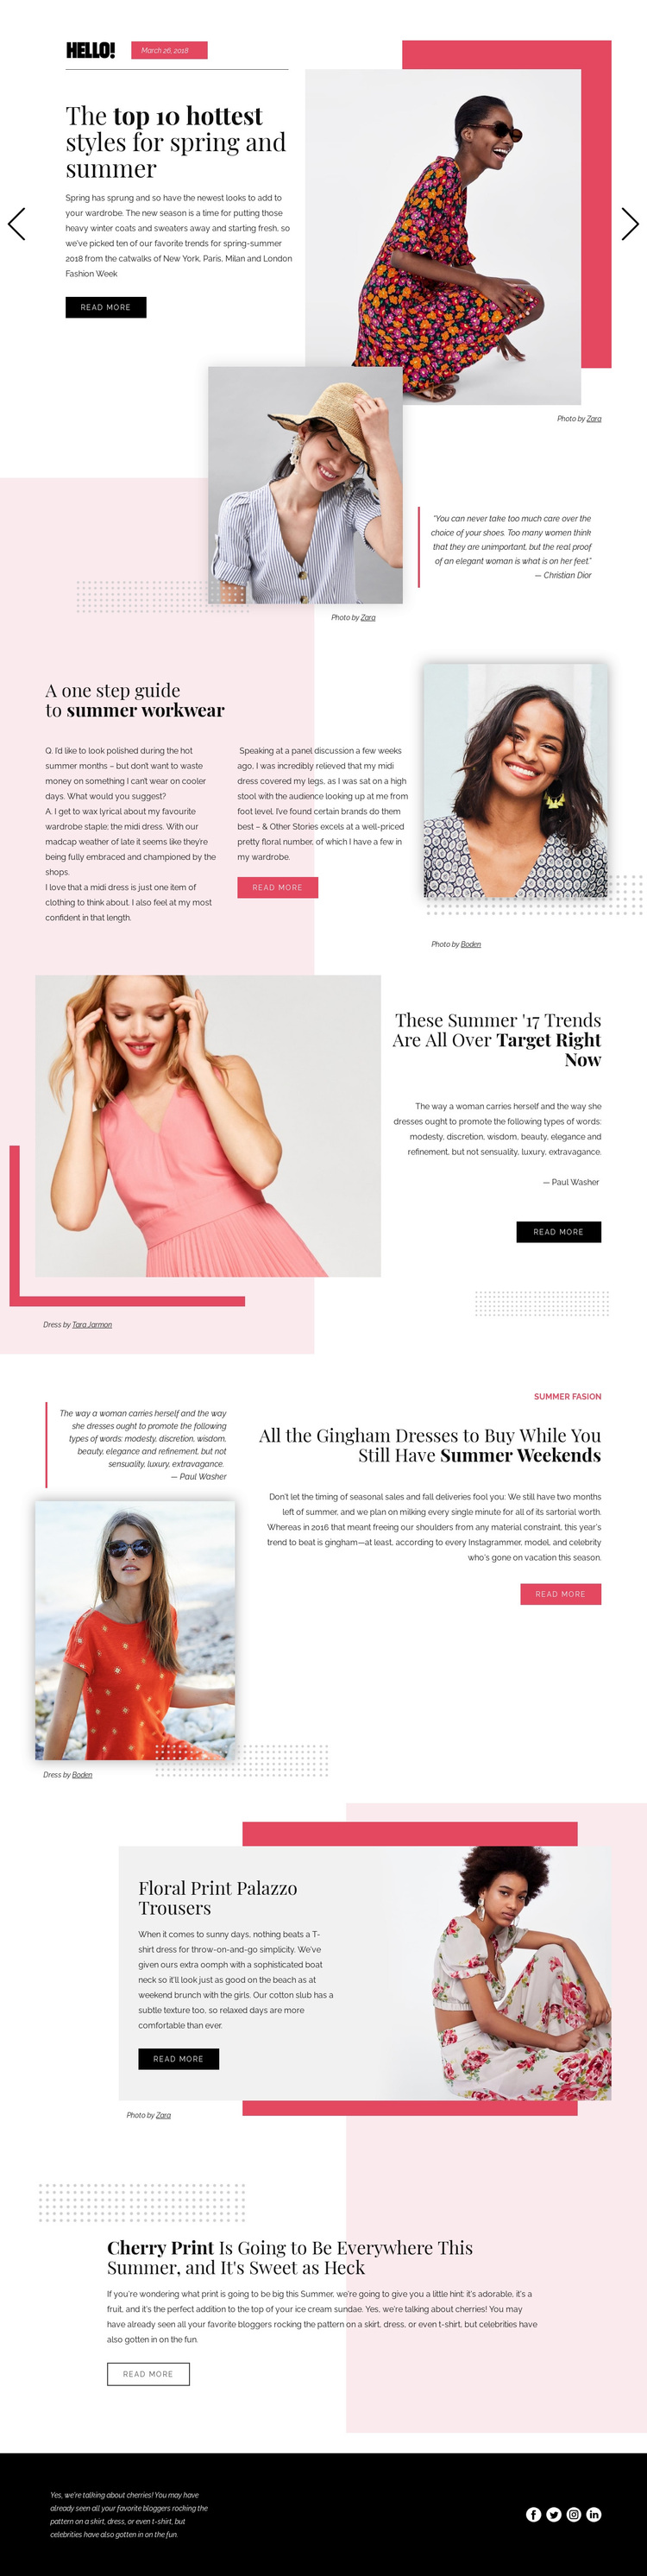 Fashion Trends Template